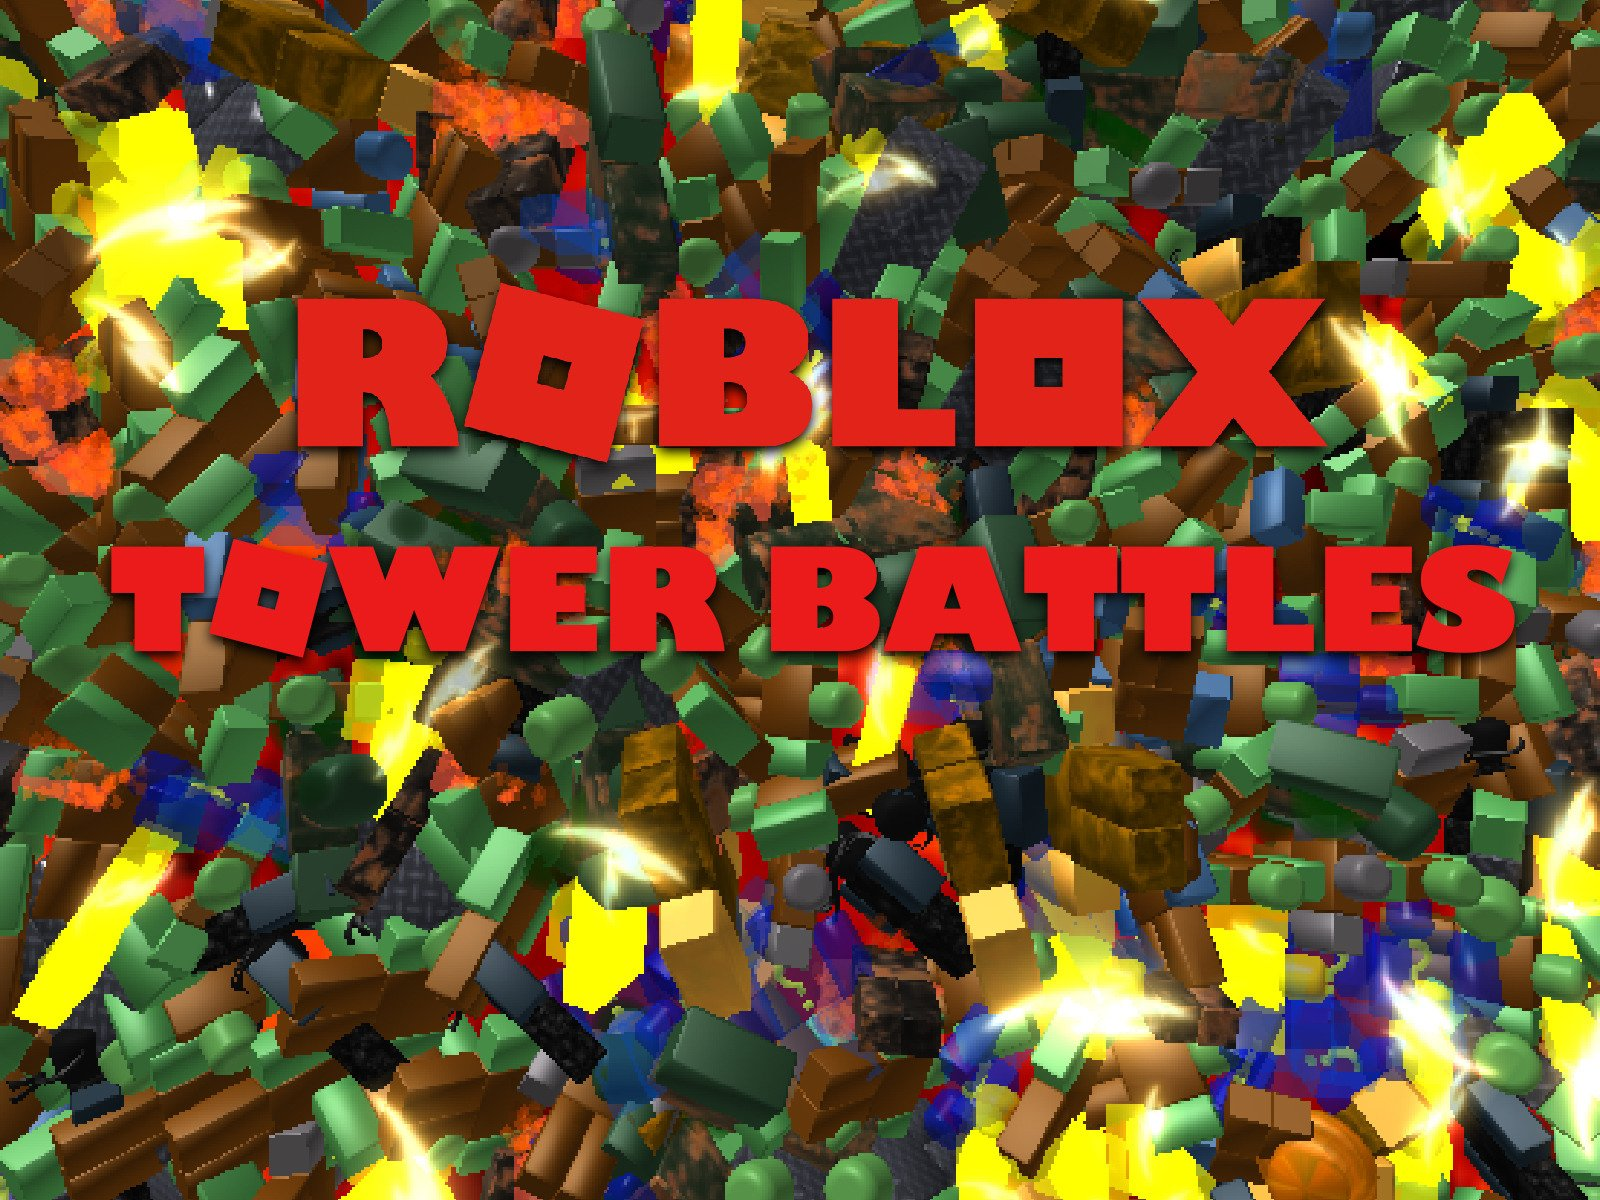 Clip: Roblox Tower Battles - Season 1